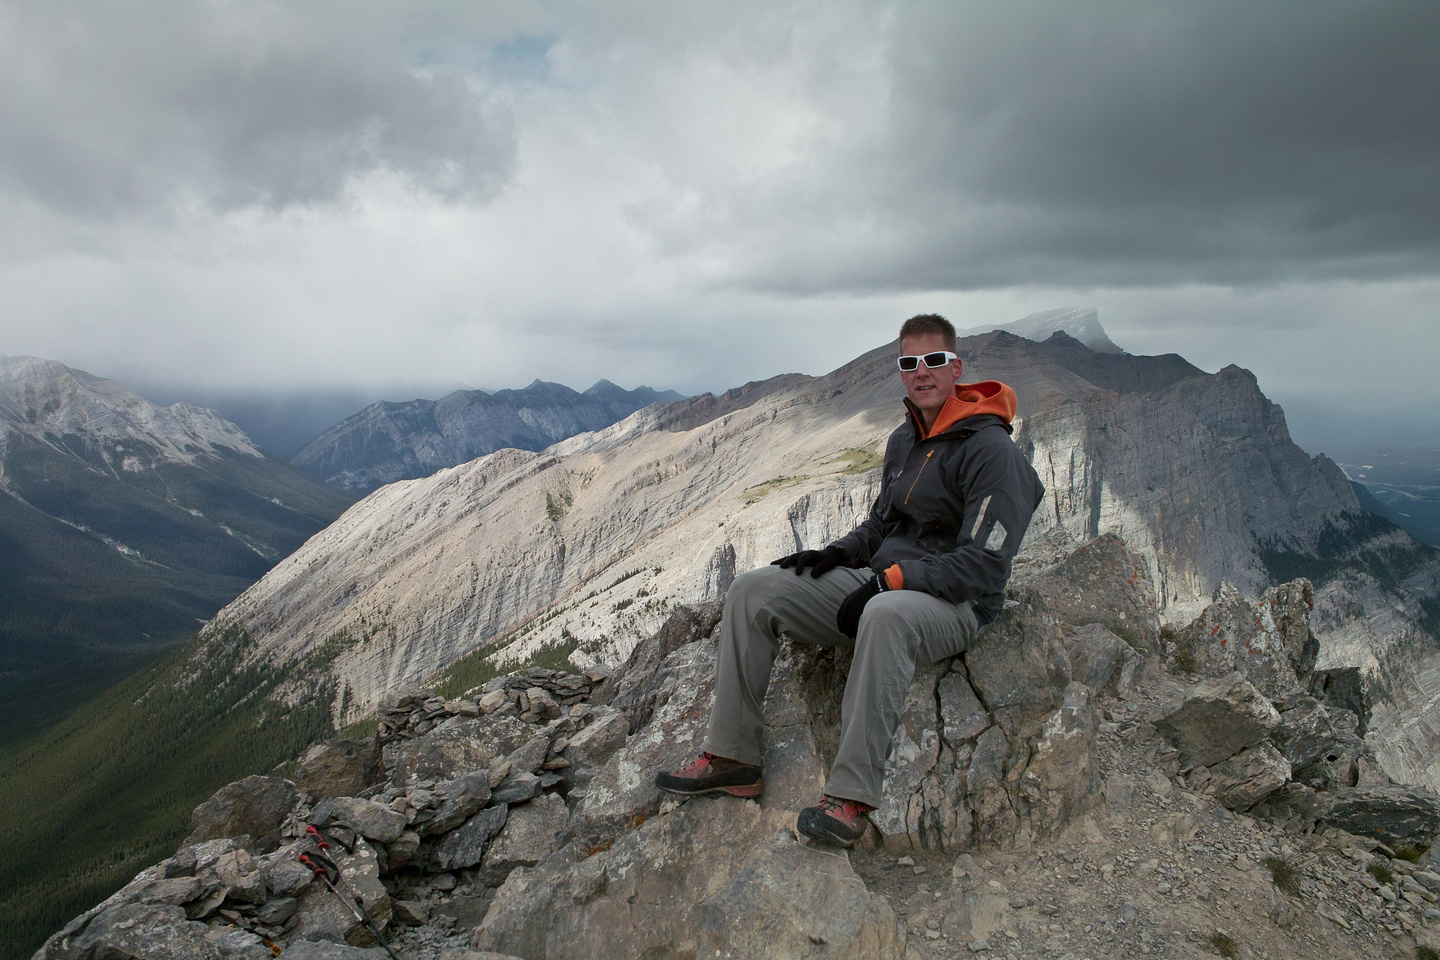 Vern on the summit of Ha Ling.